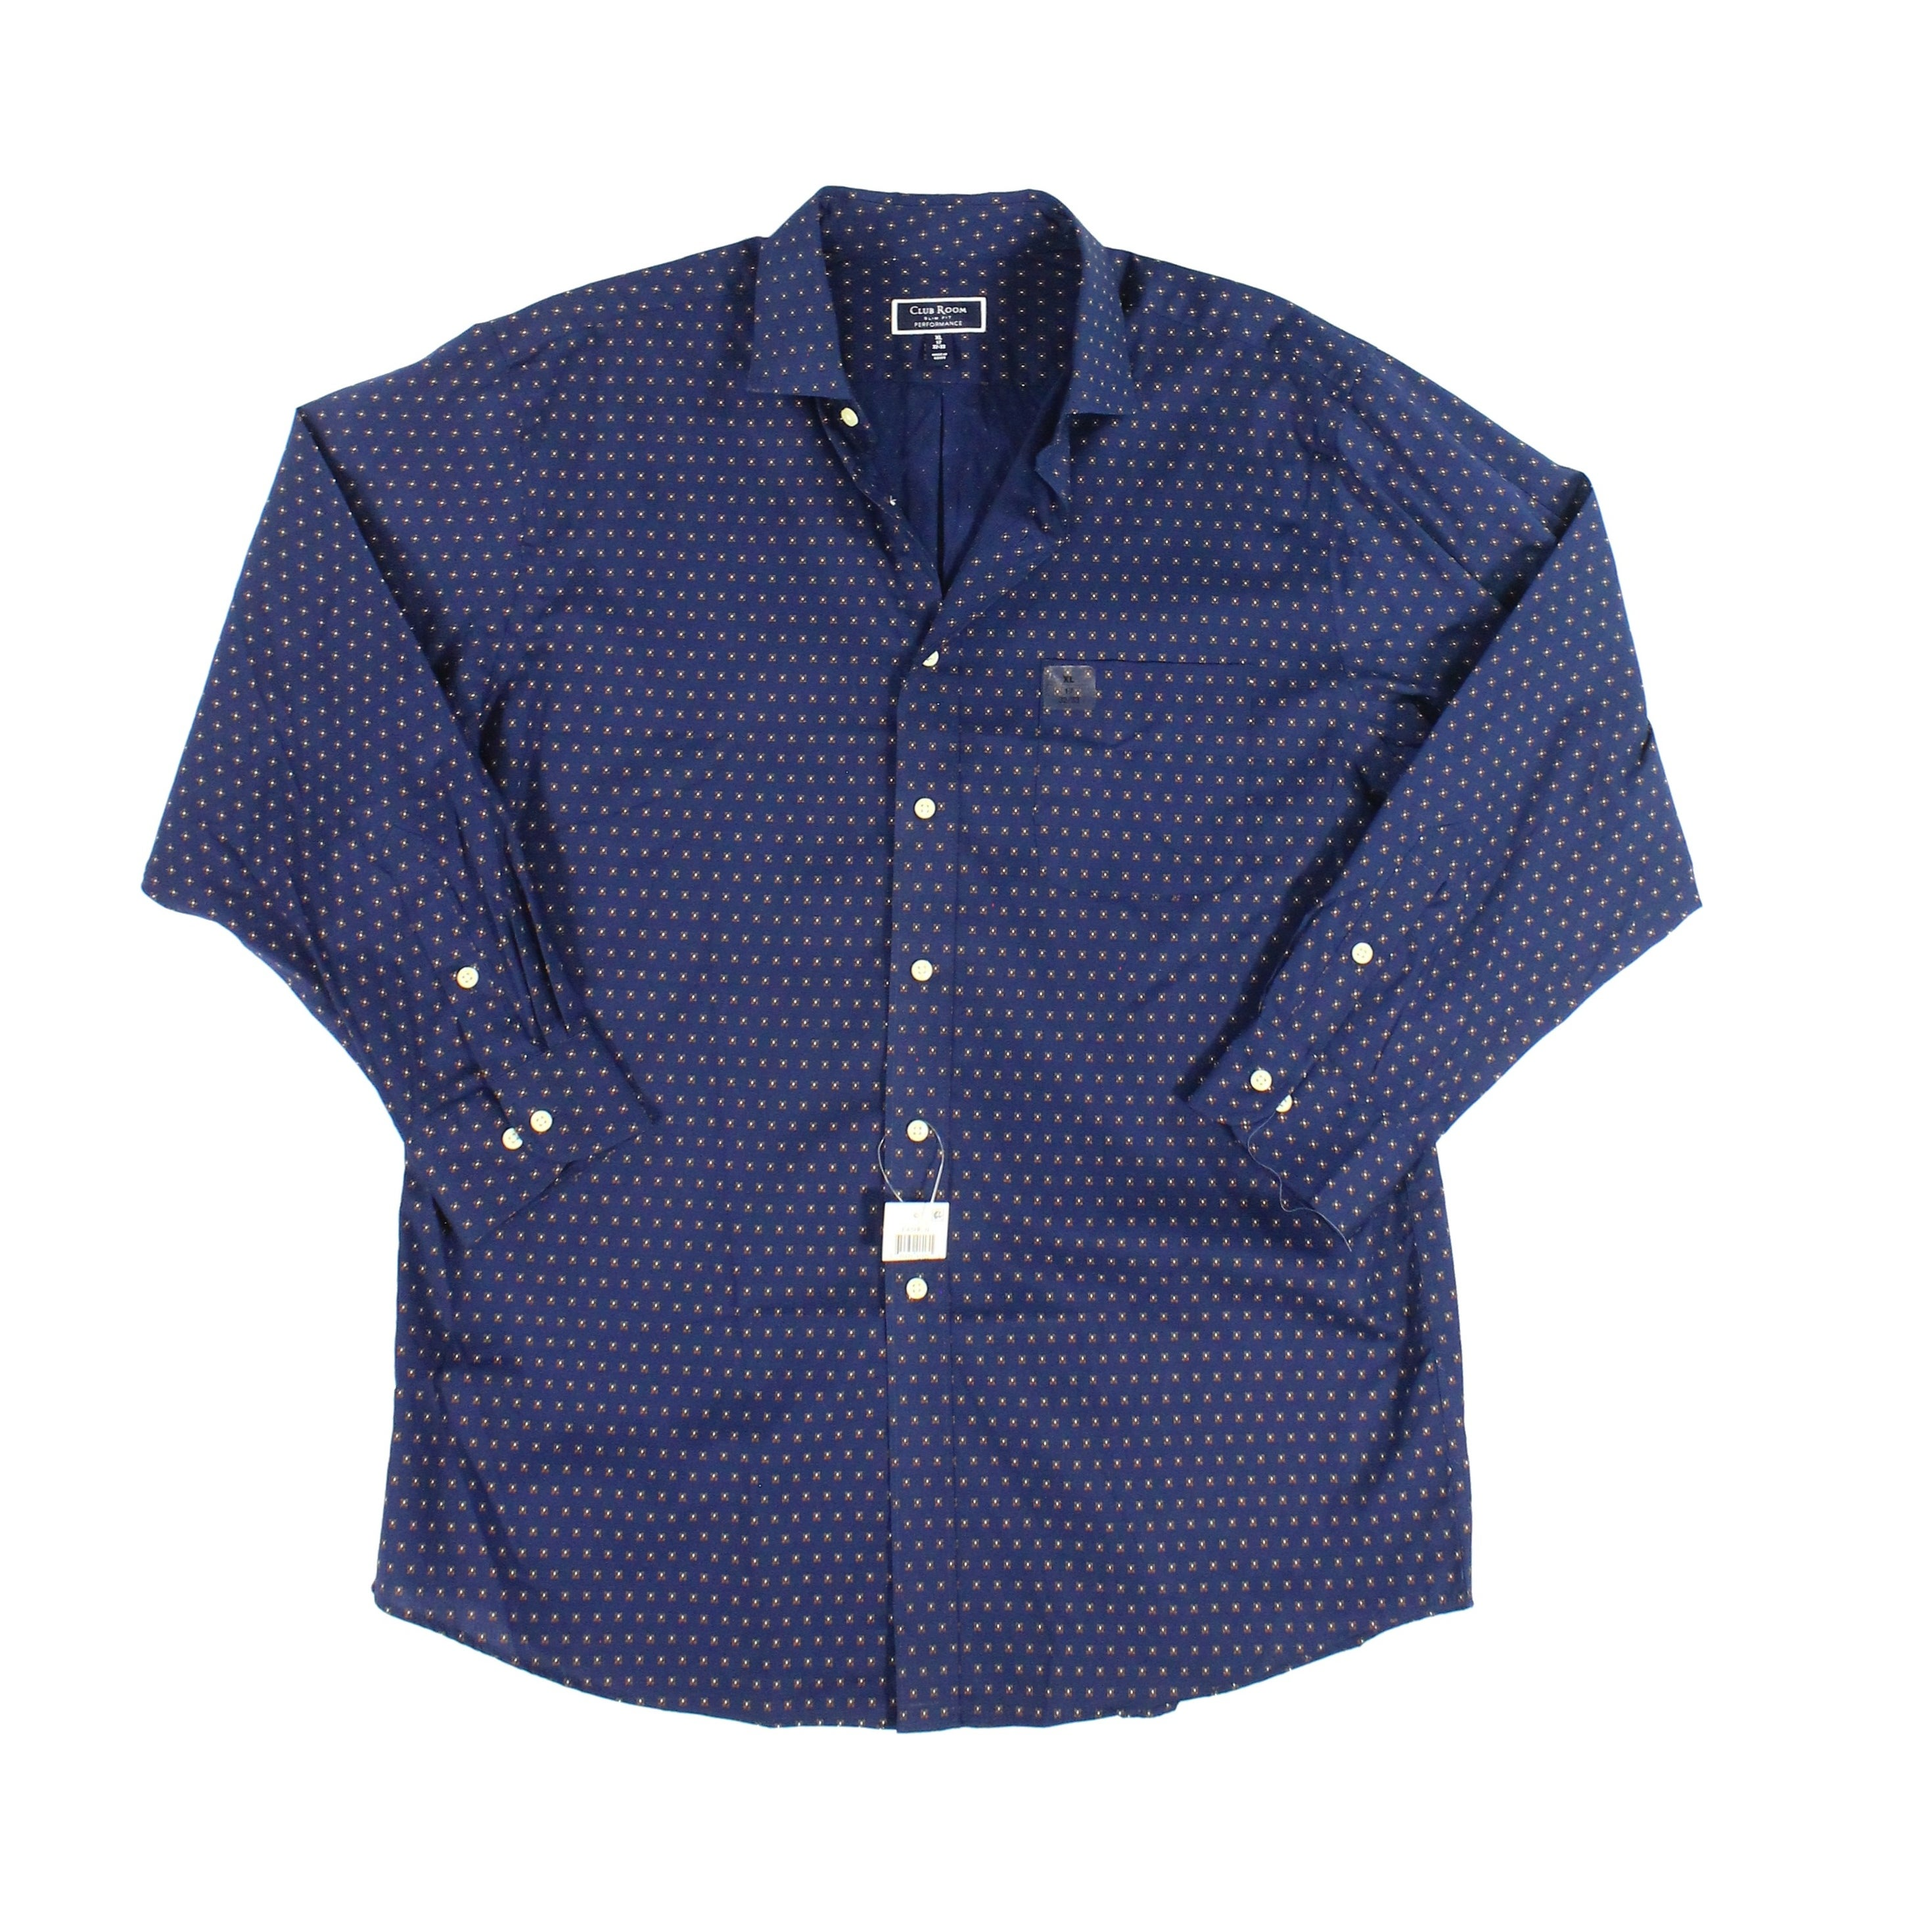 86ed2bdd Club Room Shirts | Find Great Men's Clothing Deals Shopping at Overstock